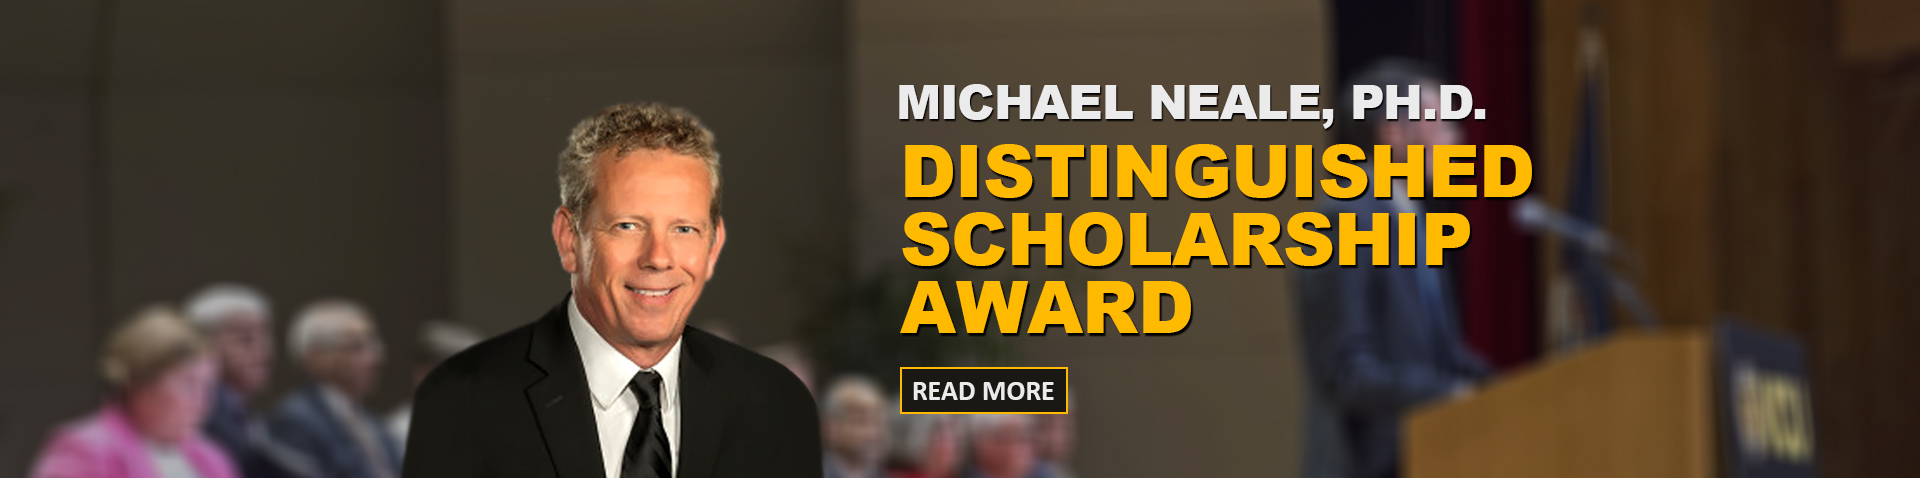 Michael Neale, PH.D. Receives Distinguished Scholarship Award